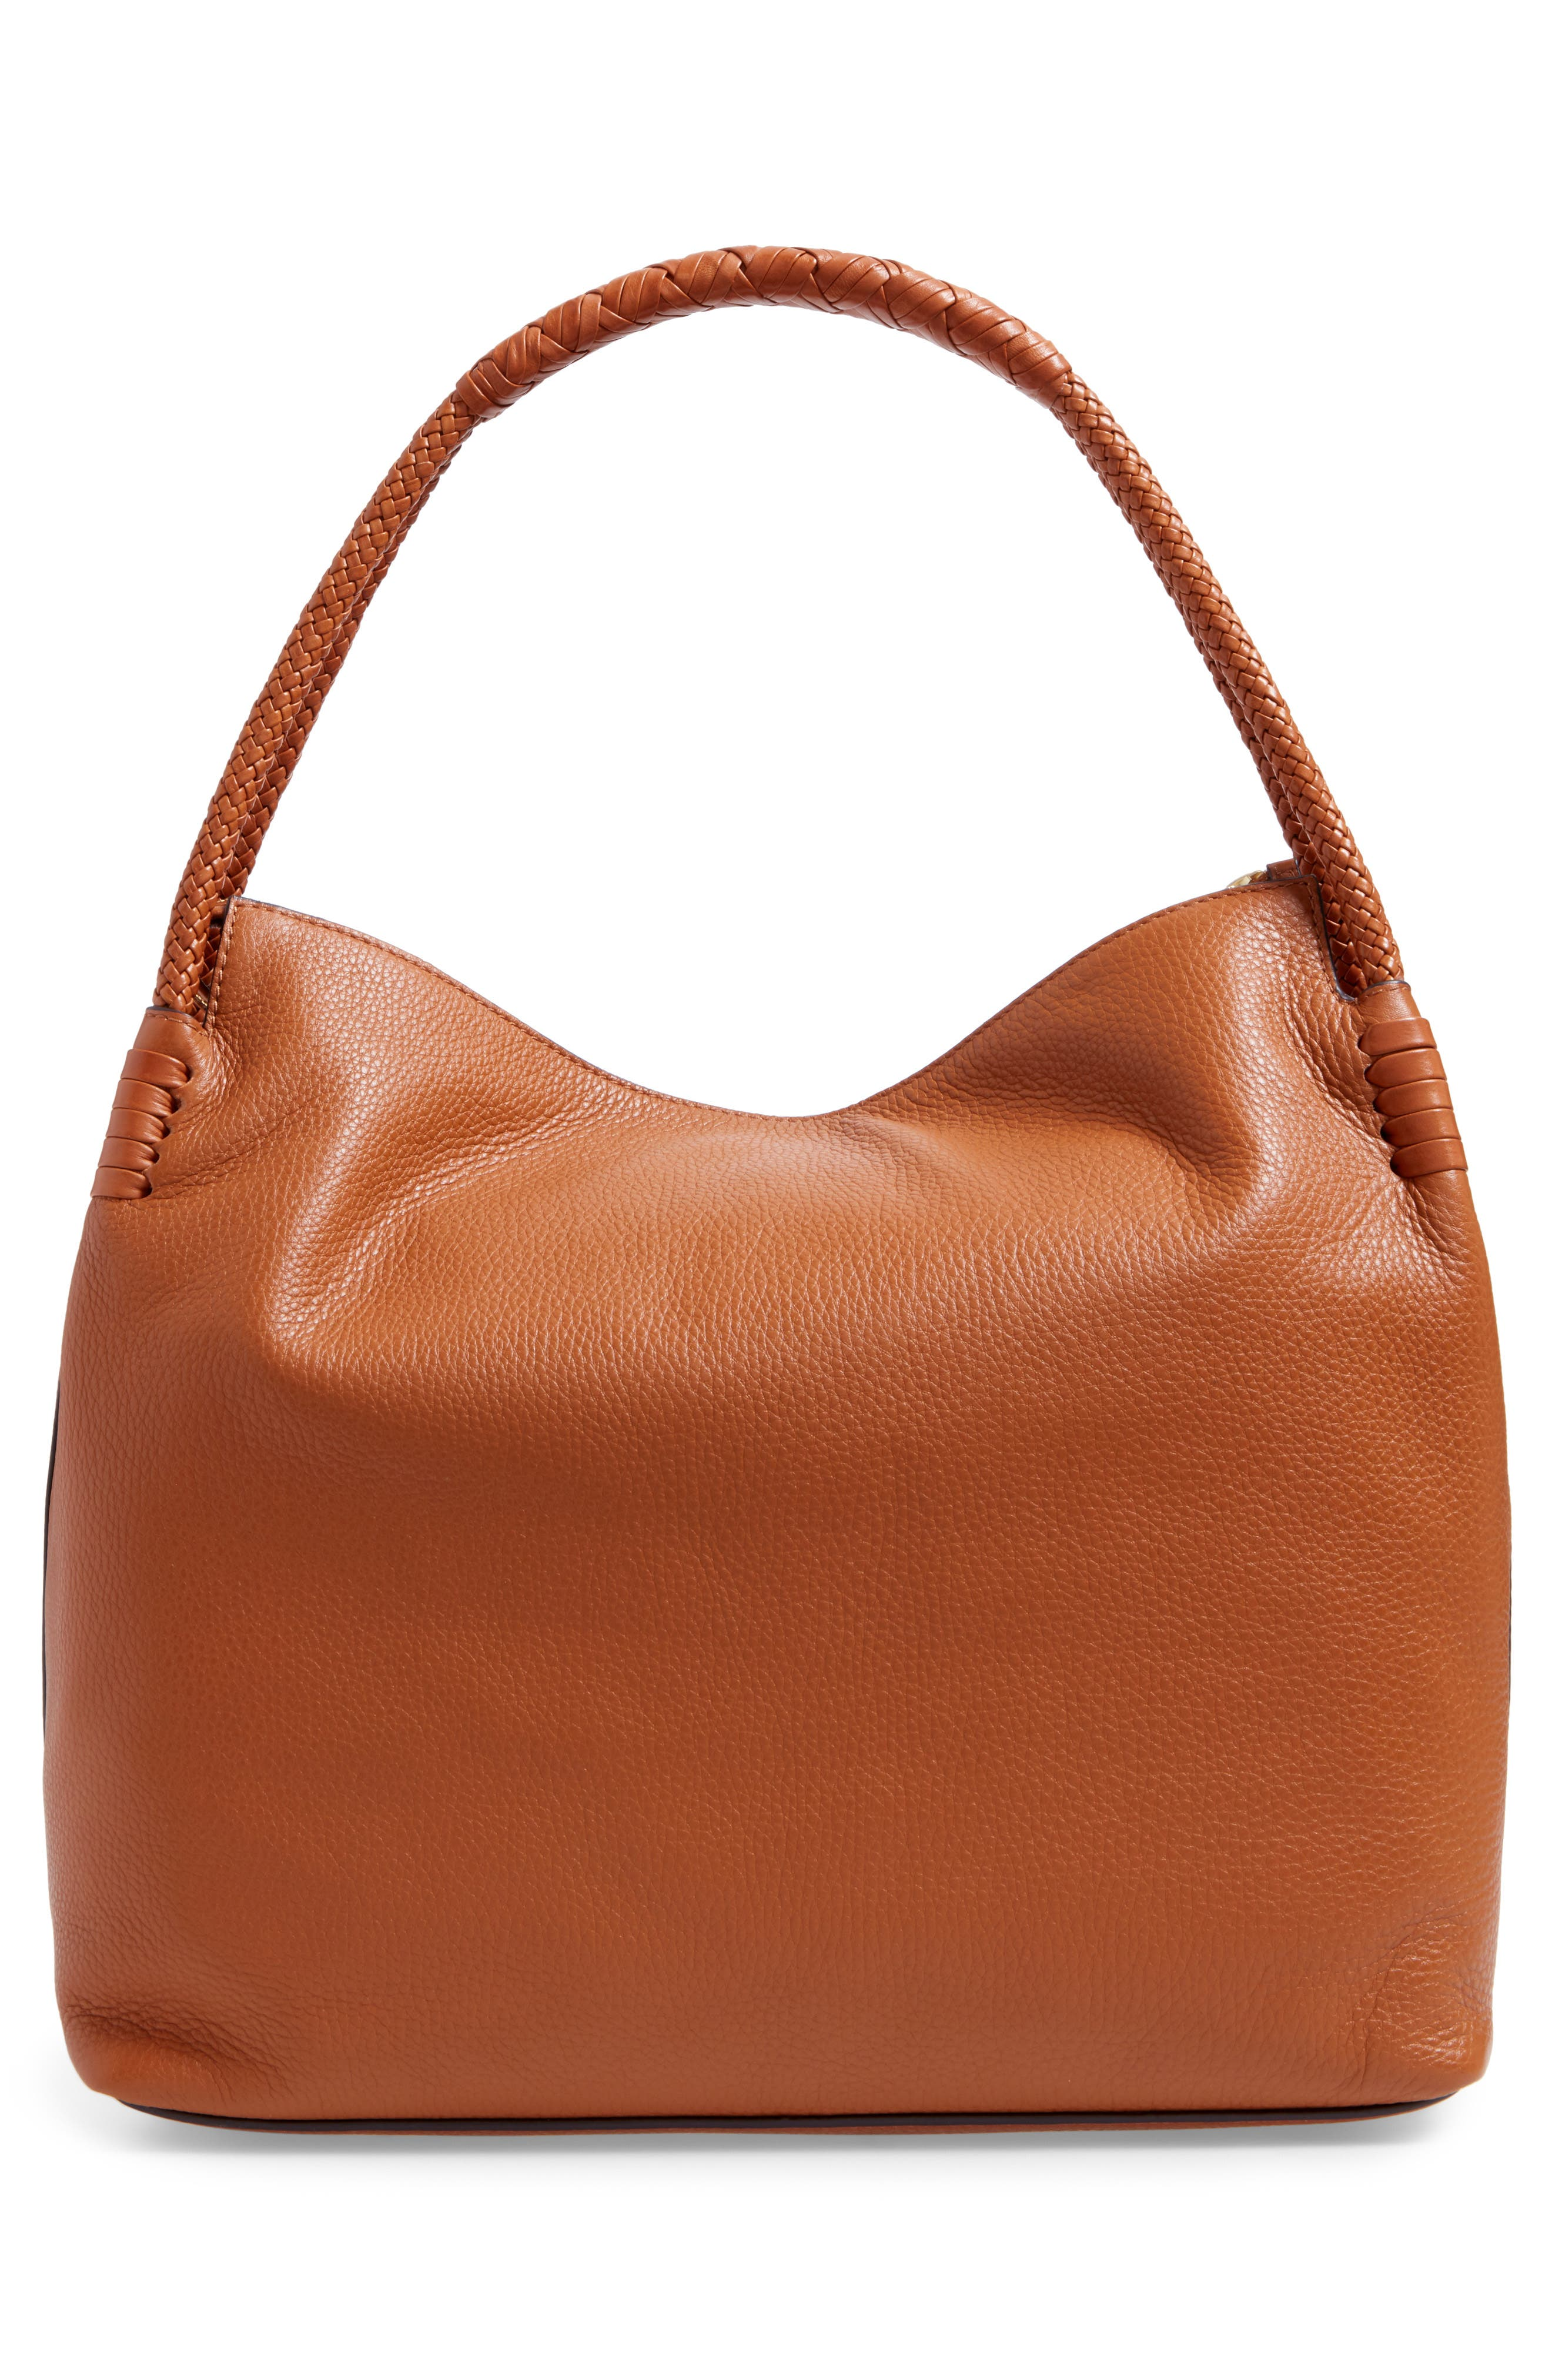 Taylor Leather Hobo Bag,                             Alternate thumbnail 3, color,                             Saddle